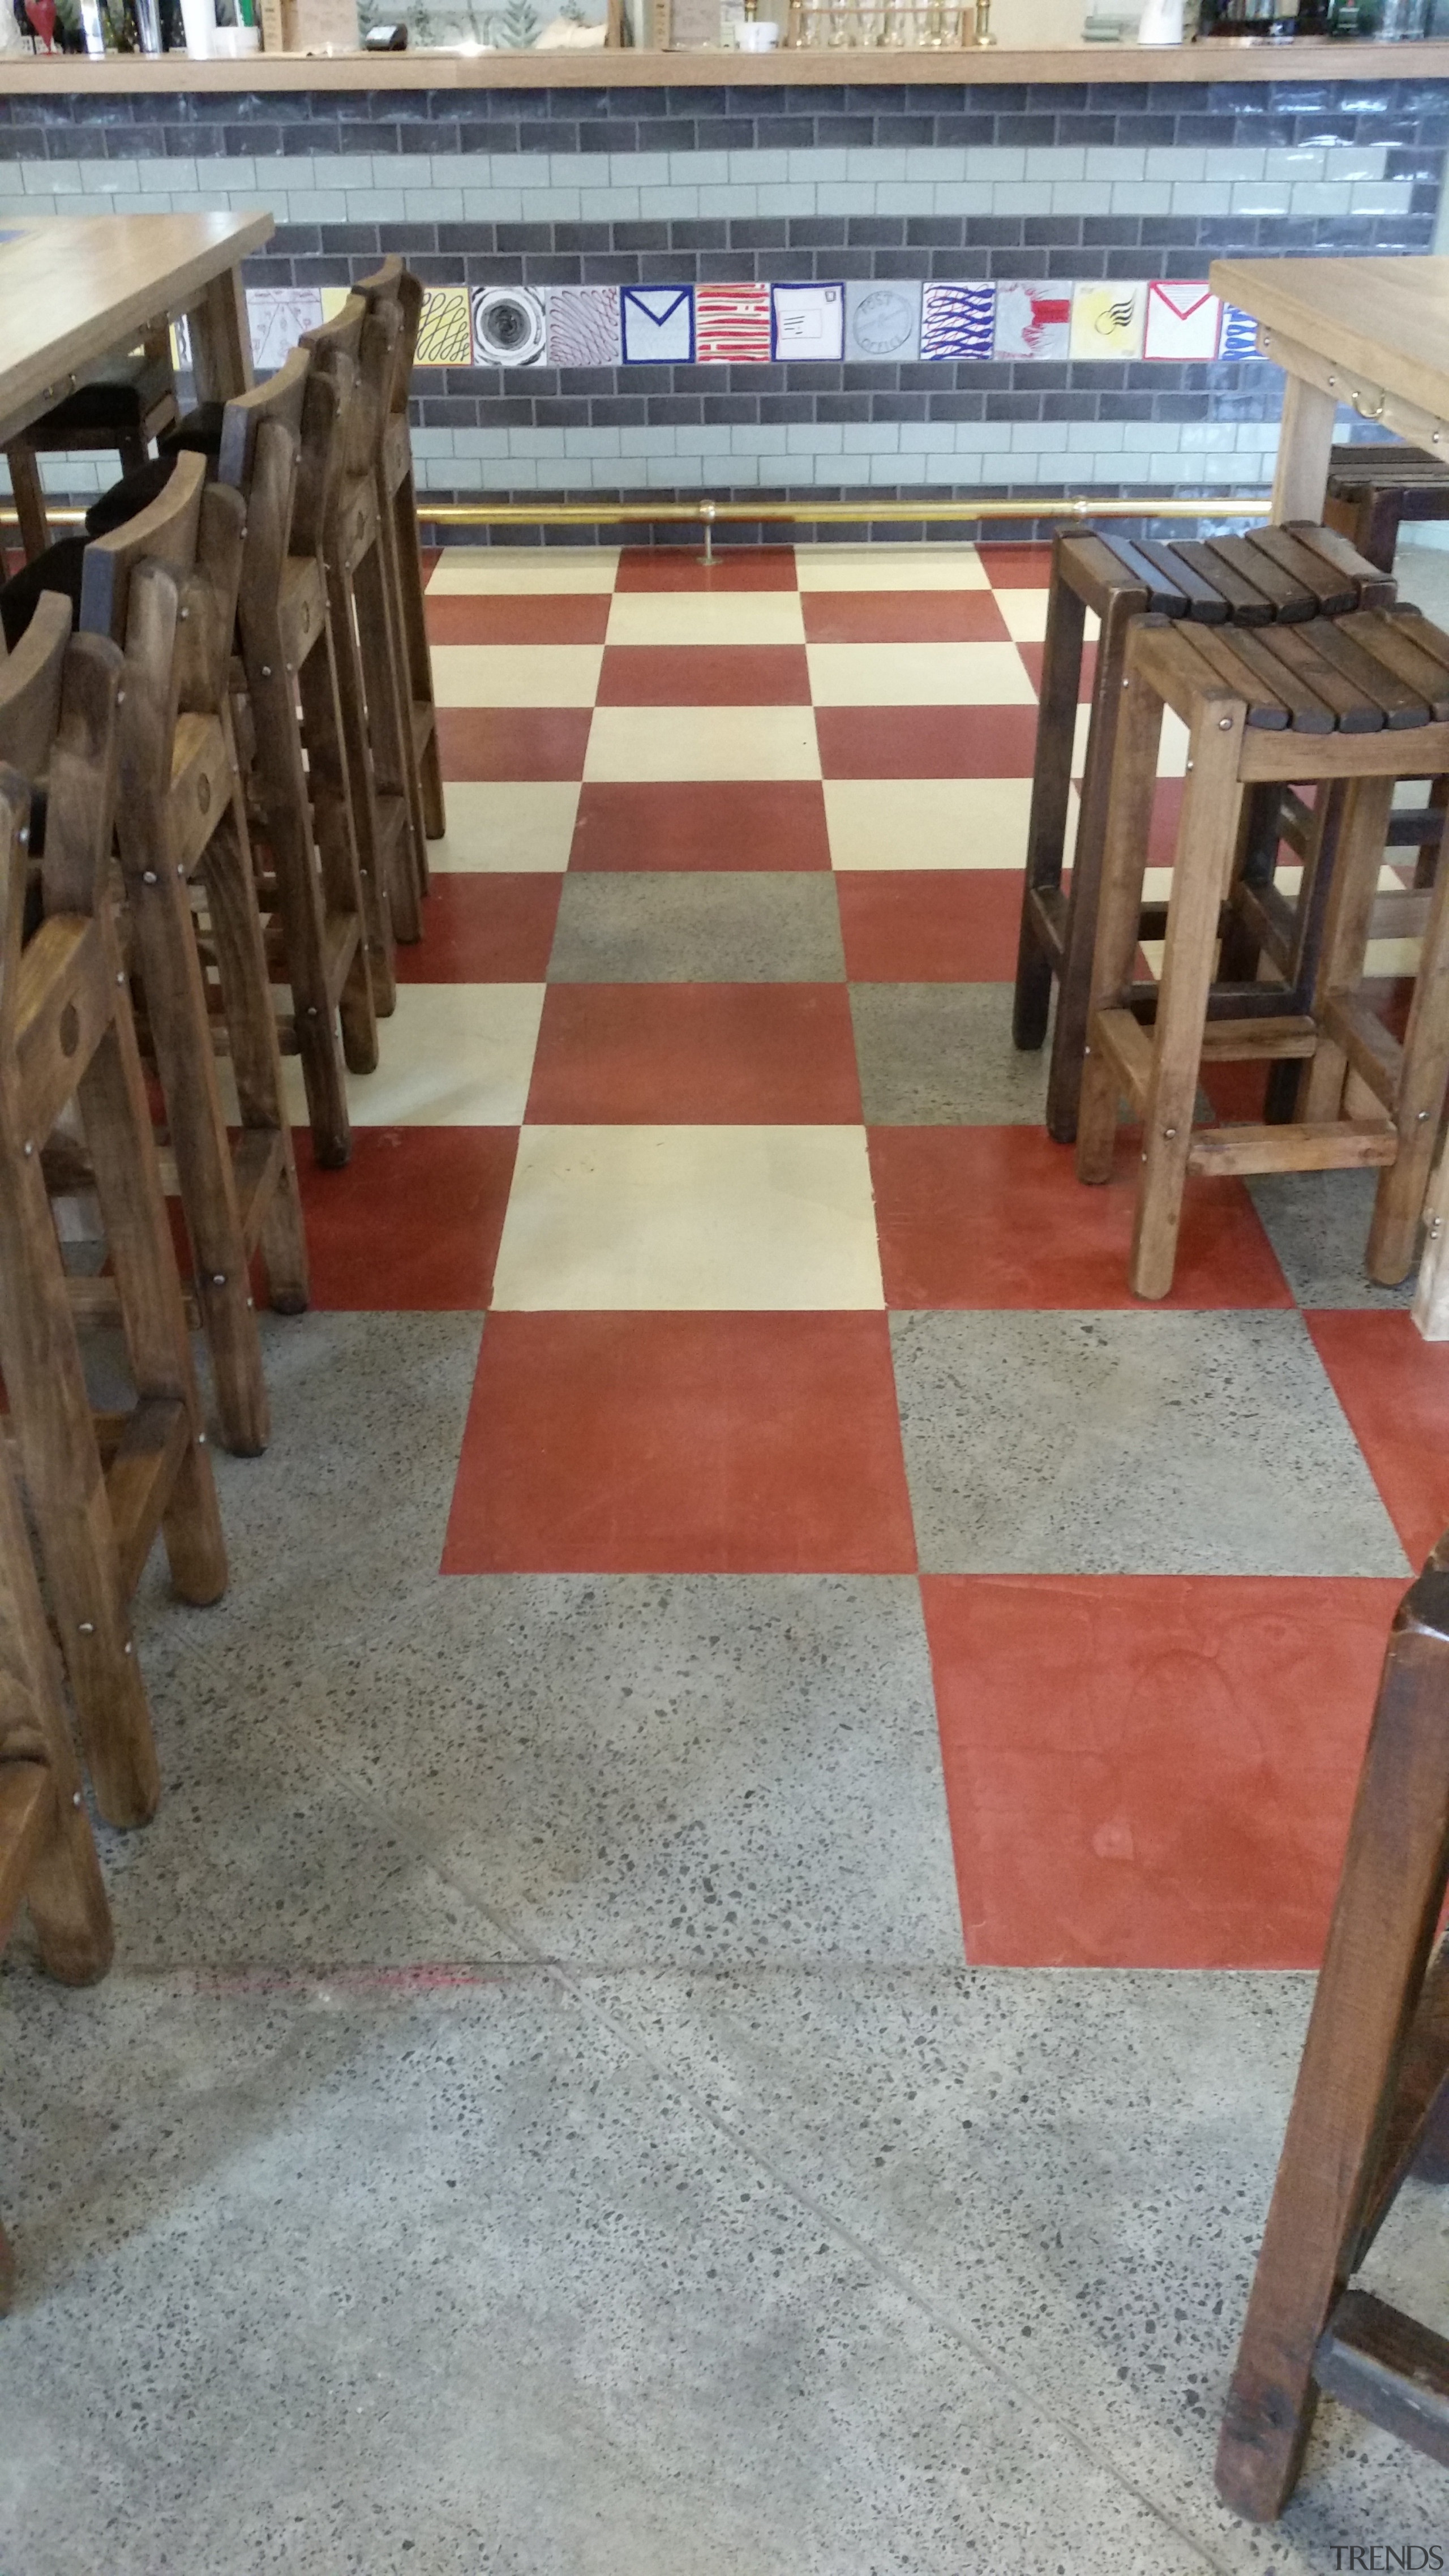 Micro Topping done at Toby Jugg Inn - chair, floor, flooring, furniture, hardwood, table, tile, wood, wood stain, gray